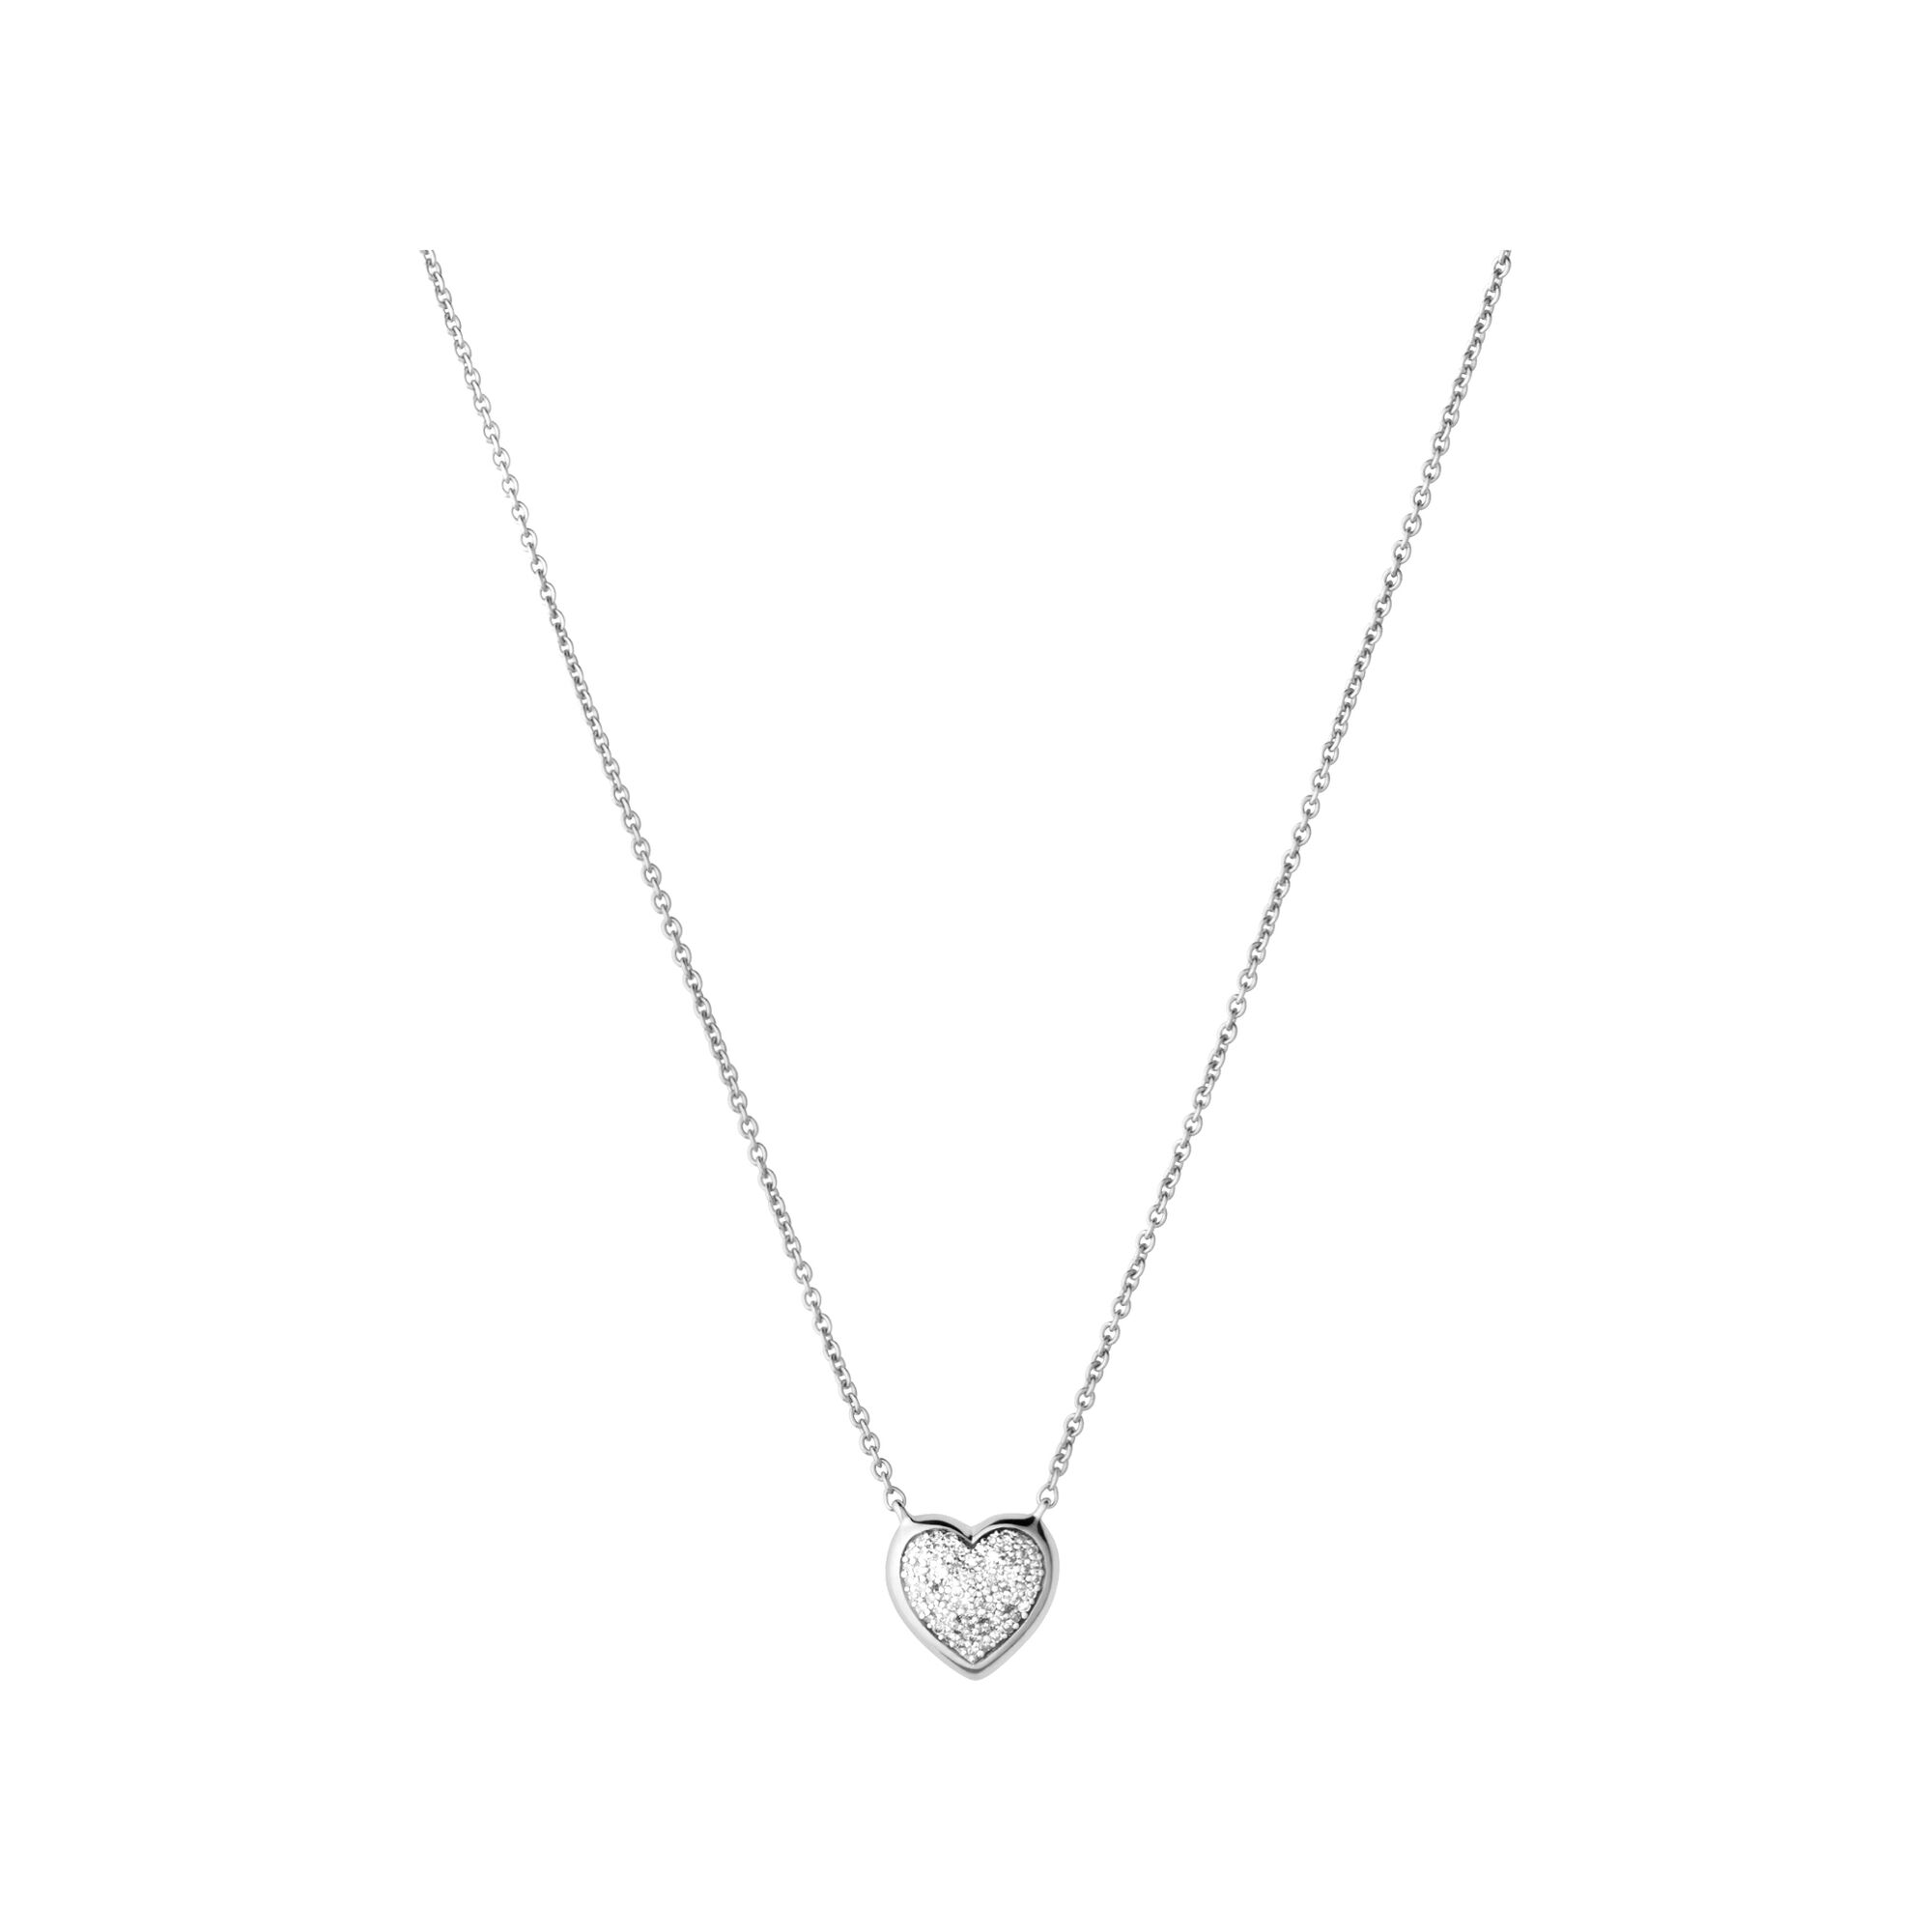 pendants metro platinum listings co necklaces small tiffany pendant heart jewellery necklace and drop diamond jewelry